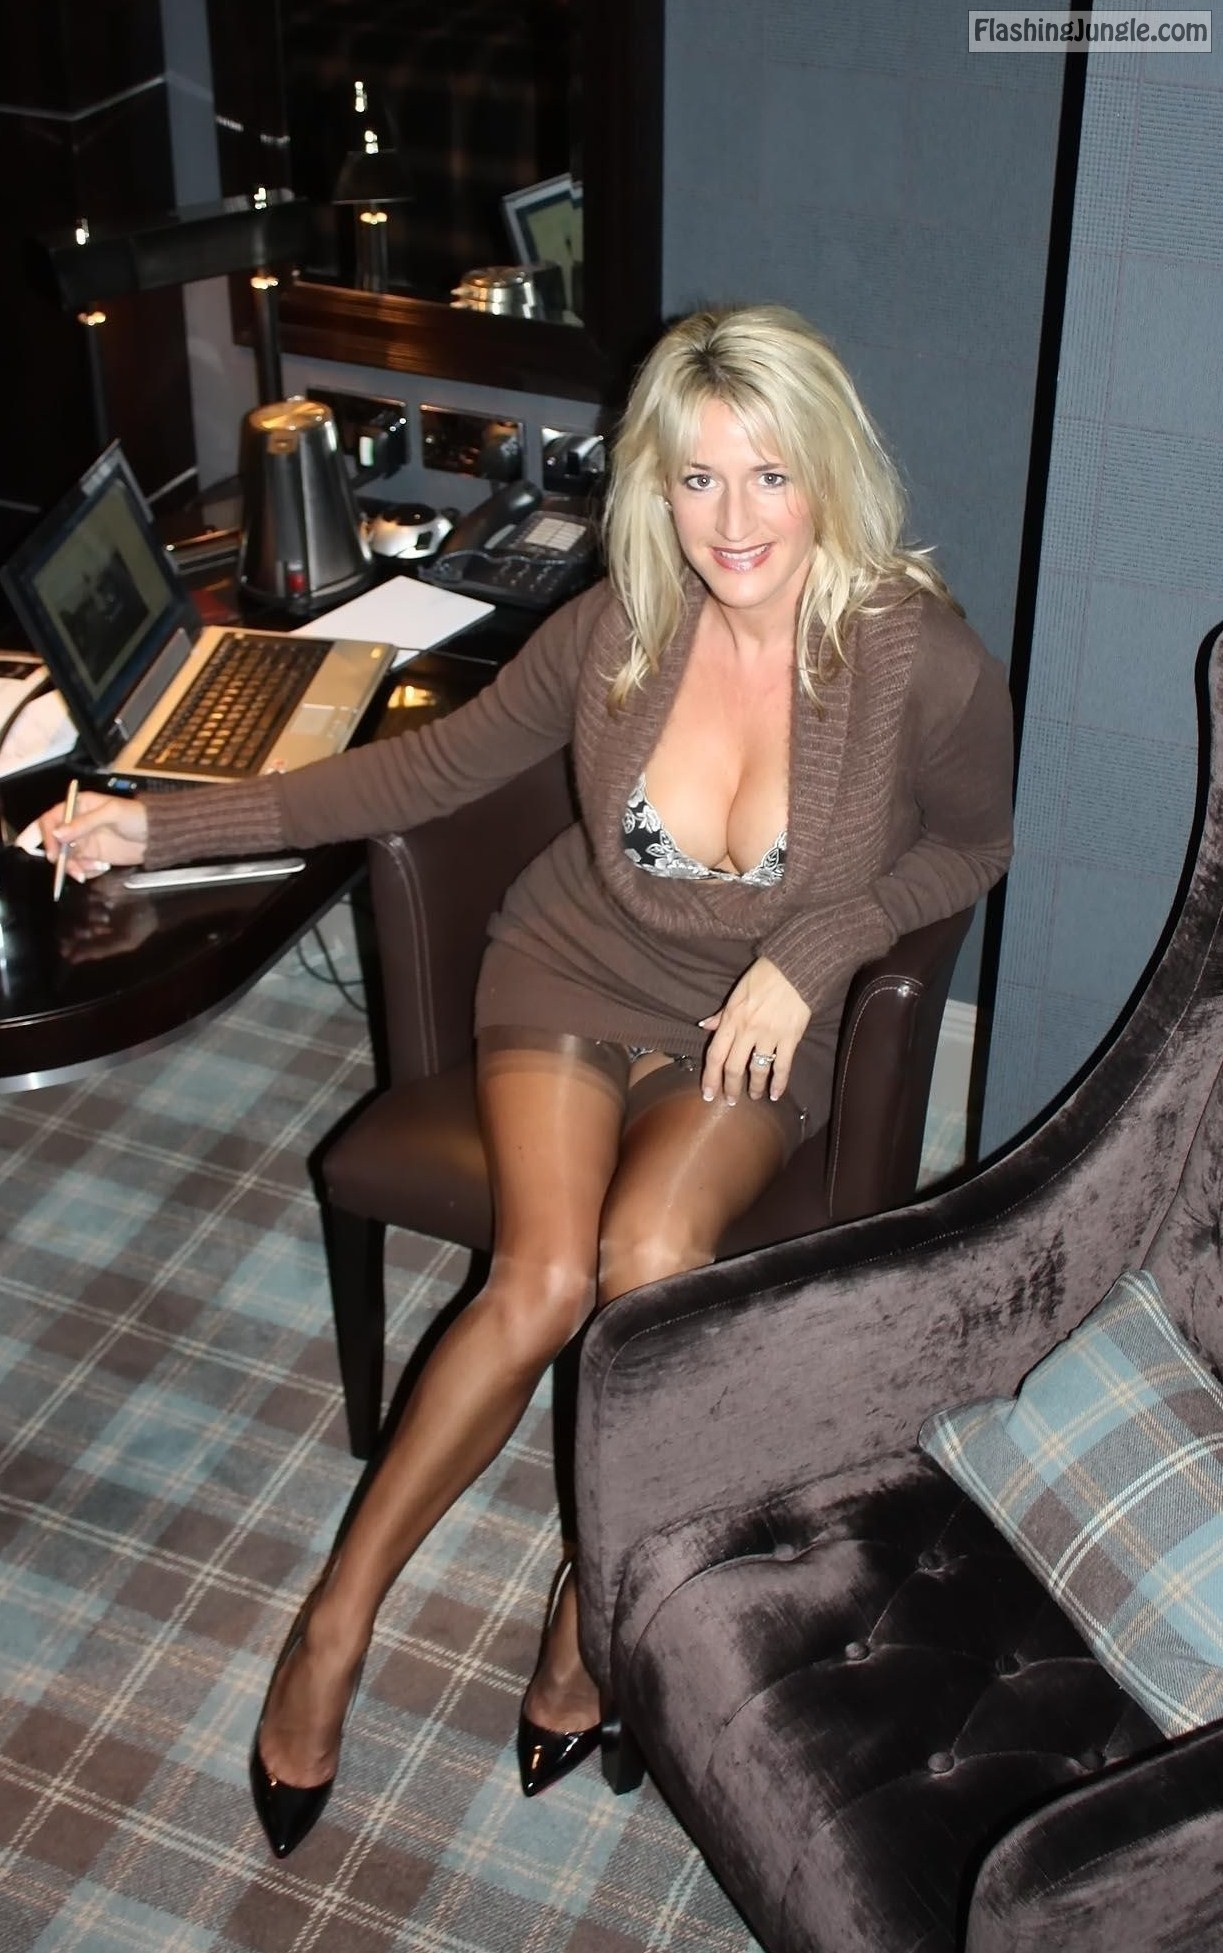 Accept. Sexy upskirt stocking picture galleries